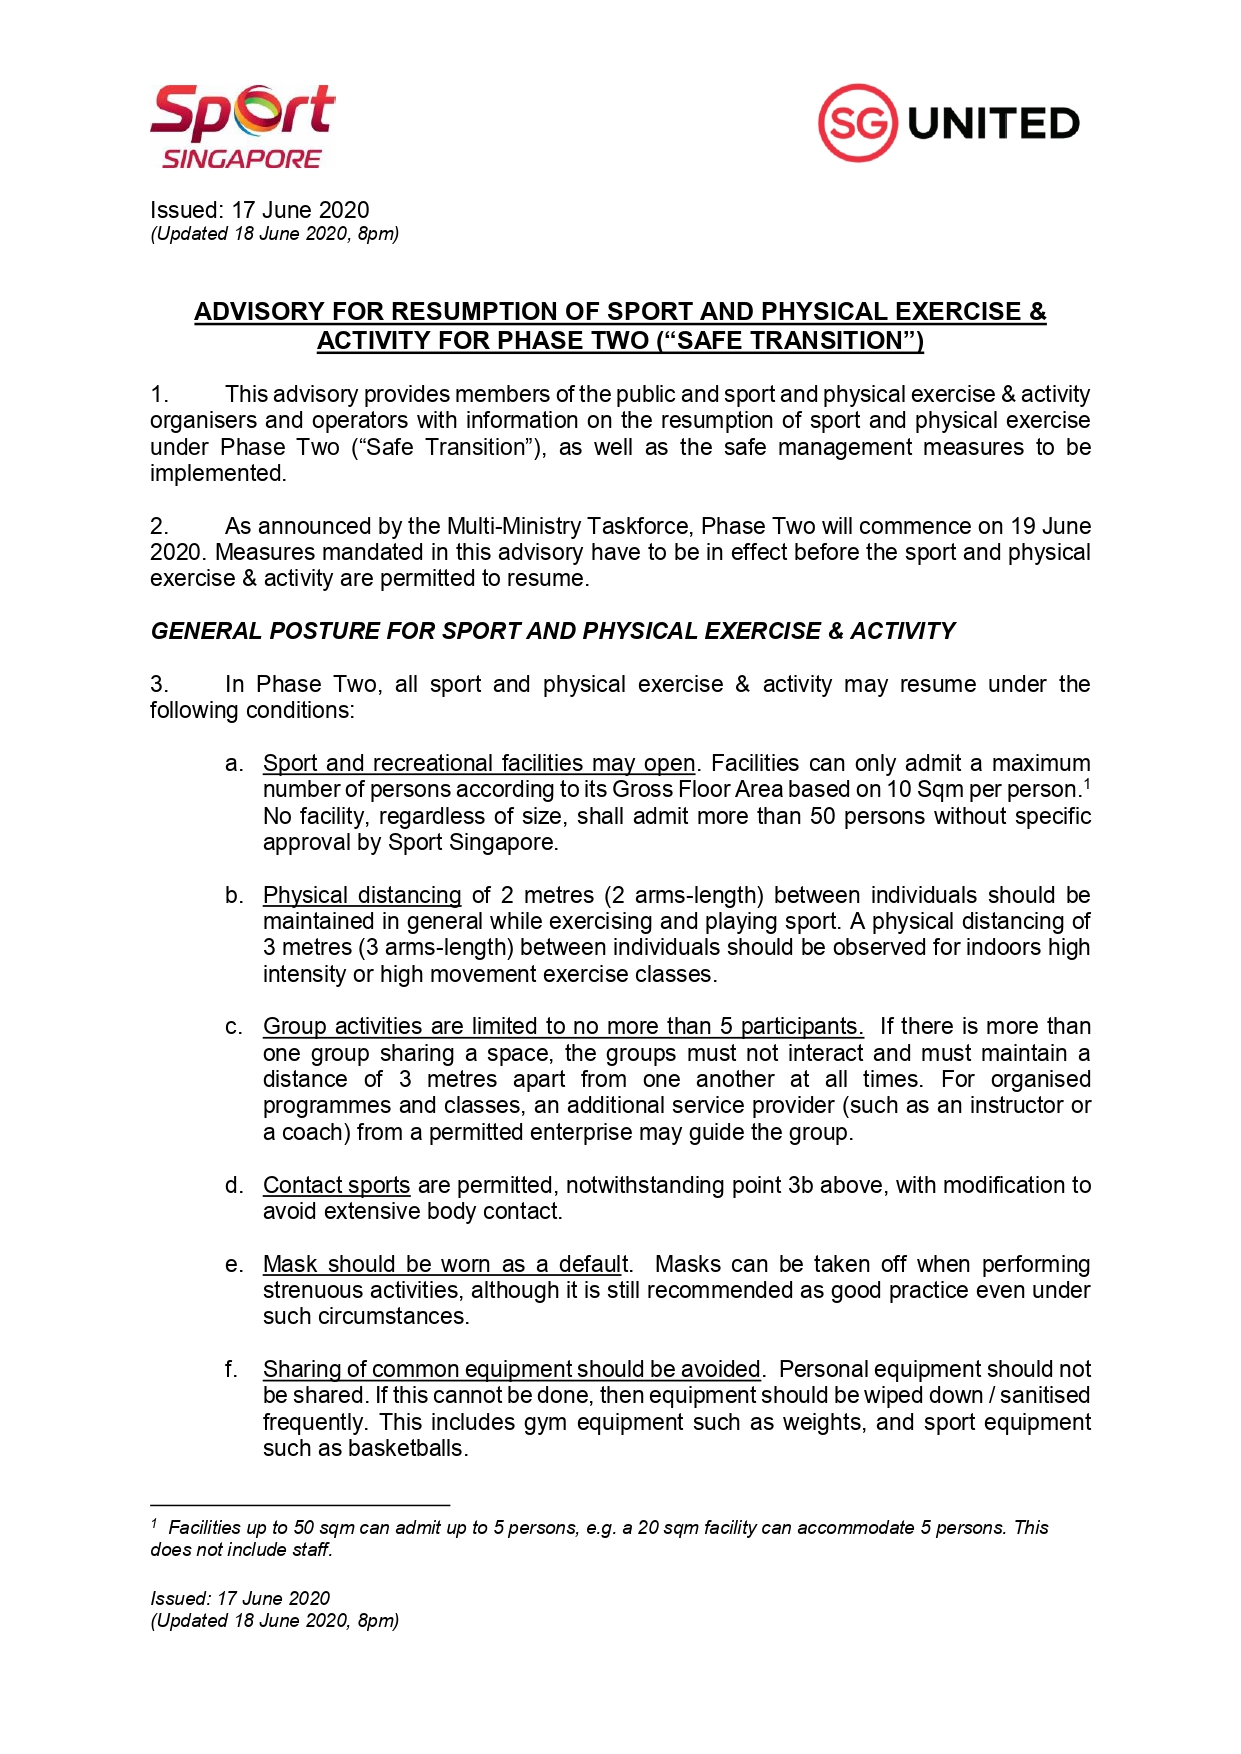 New-Advisory for Resumption of Sport_PA_PE for Phase Two (18 Jun 20) 8pm_pages-to-jpg-0001